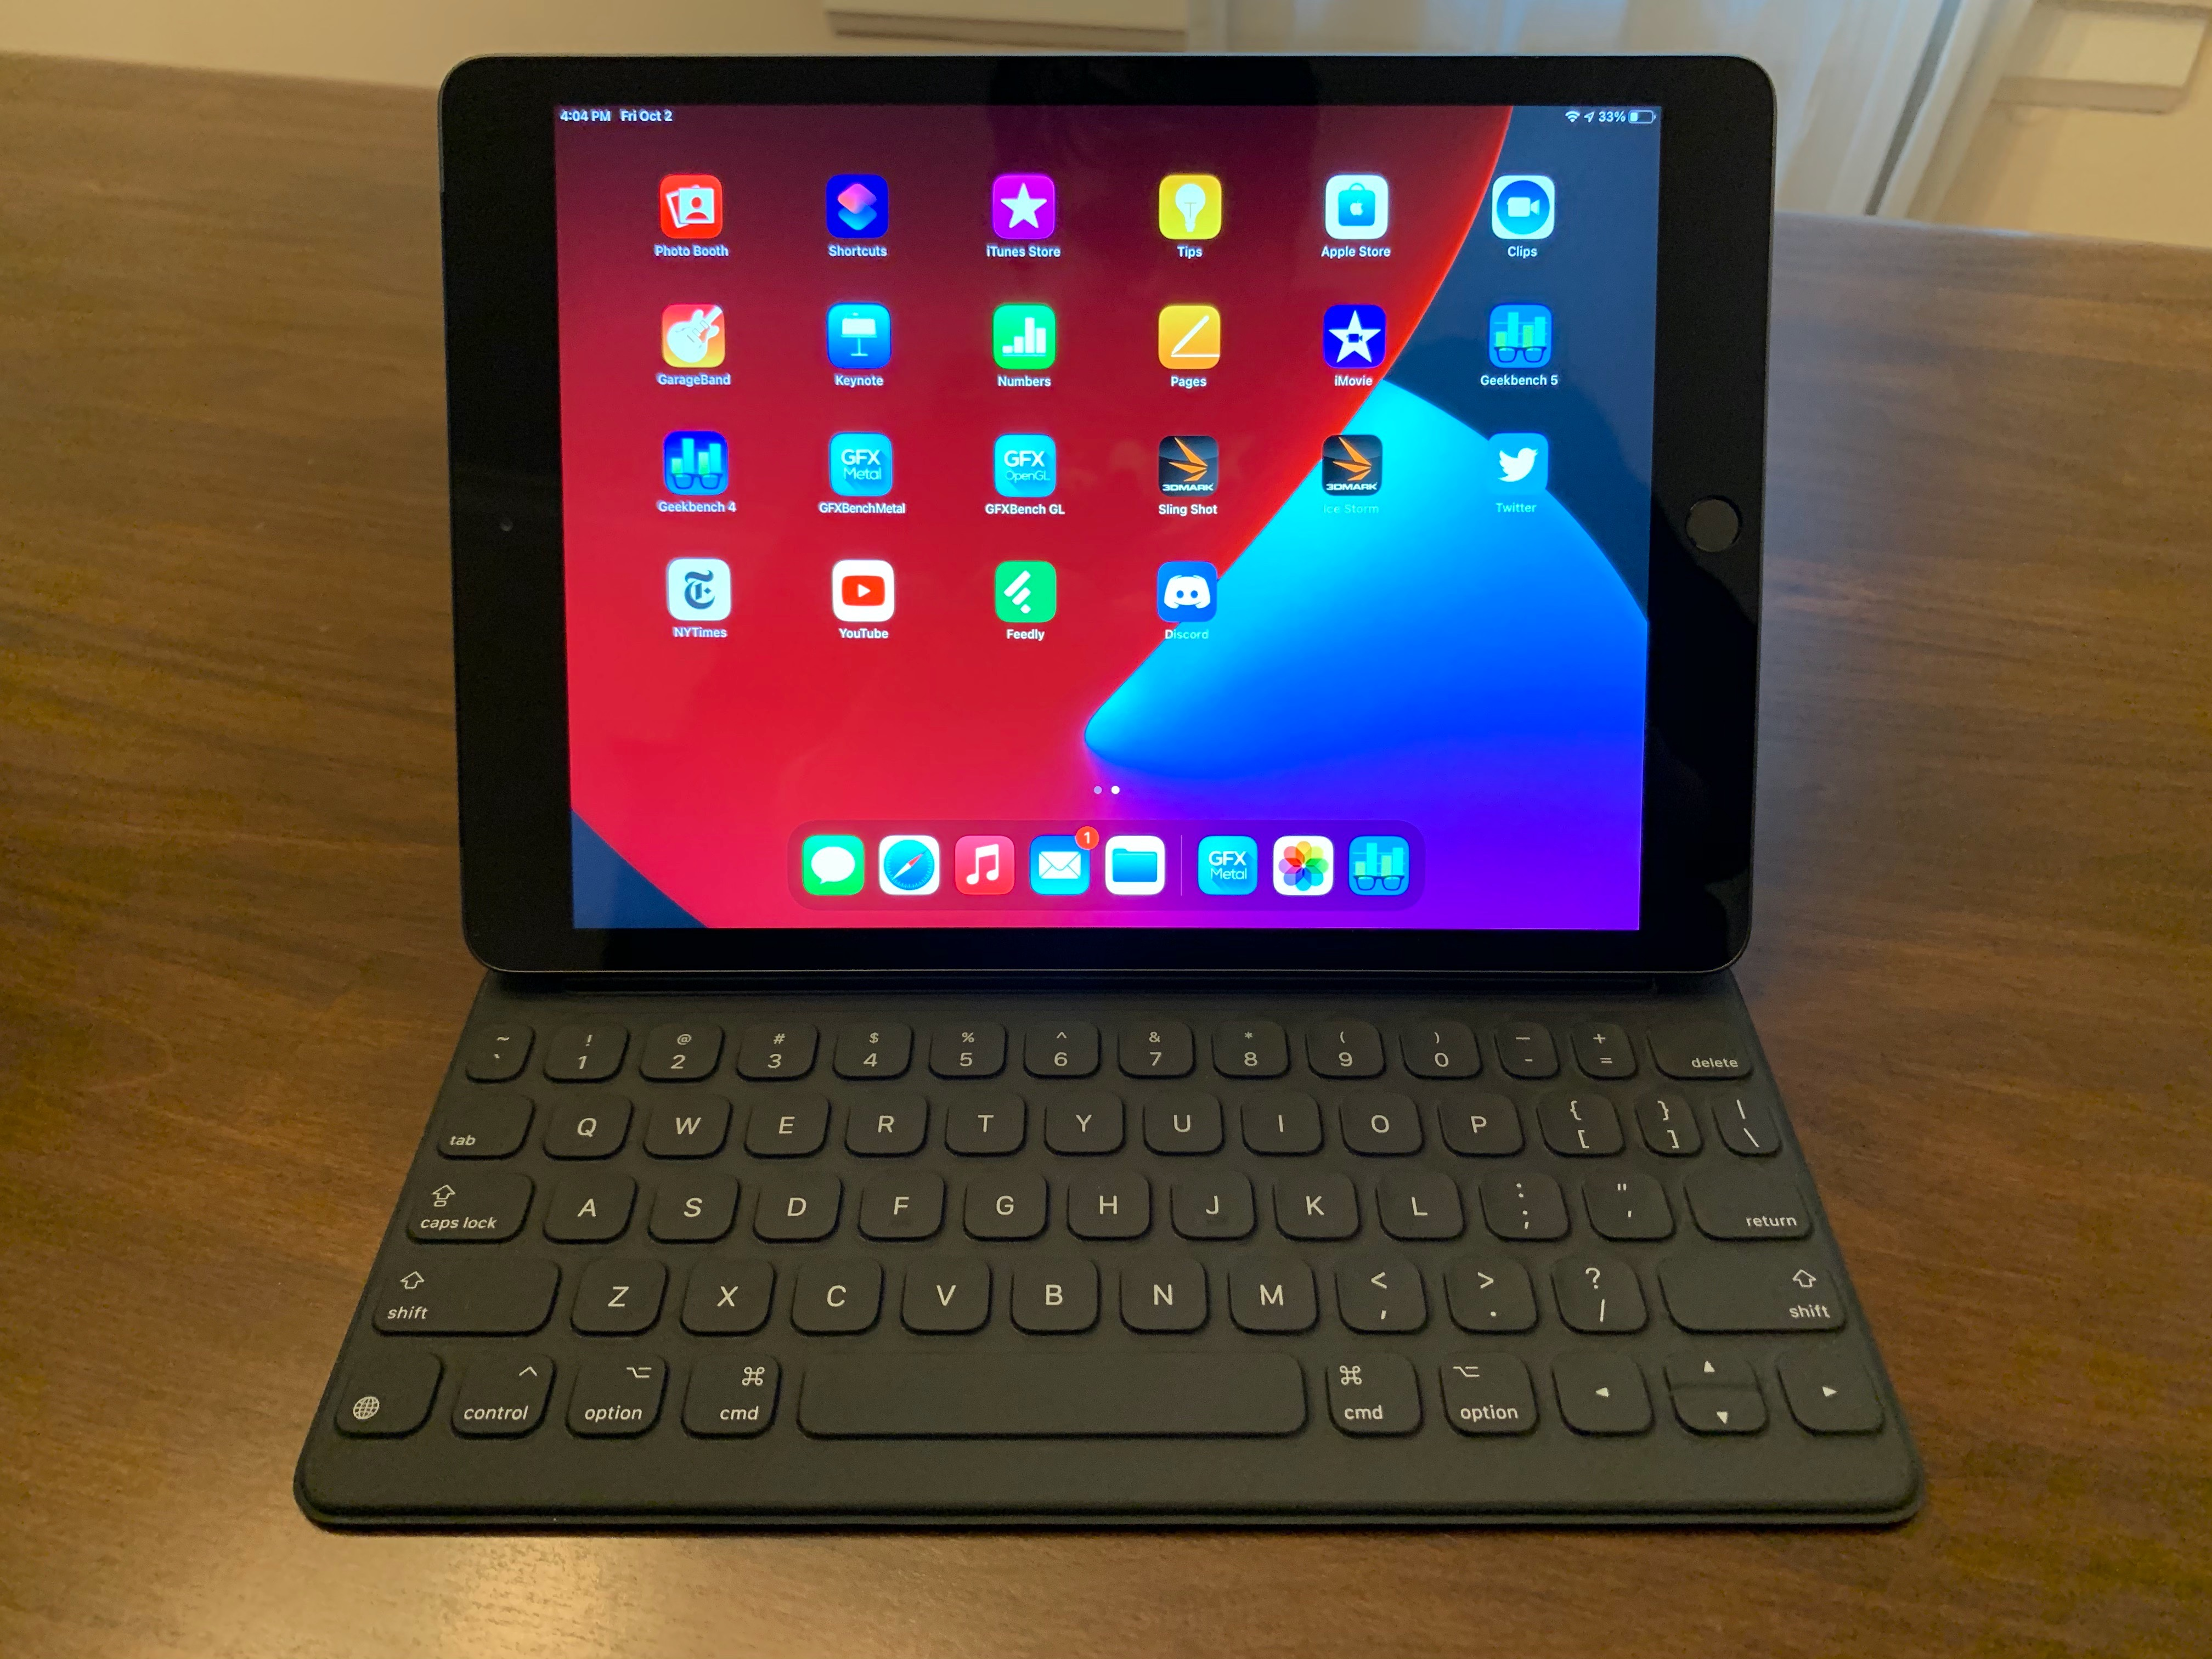 The 2020 iPad doesn't come included with Apple's Smart Keyboard, but it does support the attachment.